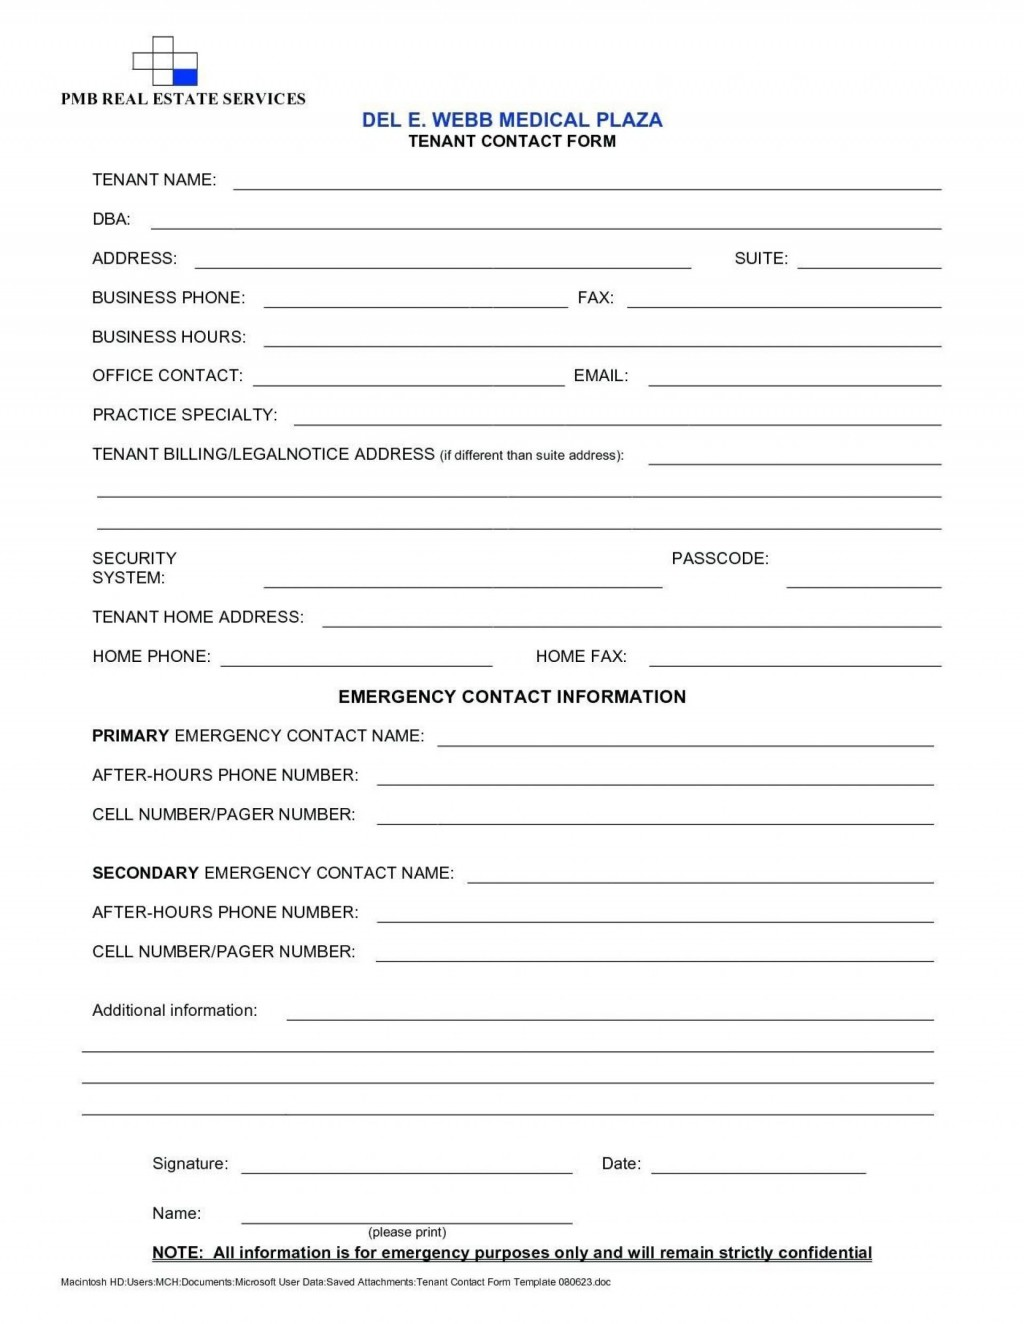 001 Awful New Customer Form Template Word Highest Quality  Registration Account FeedbackLarge